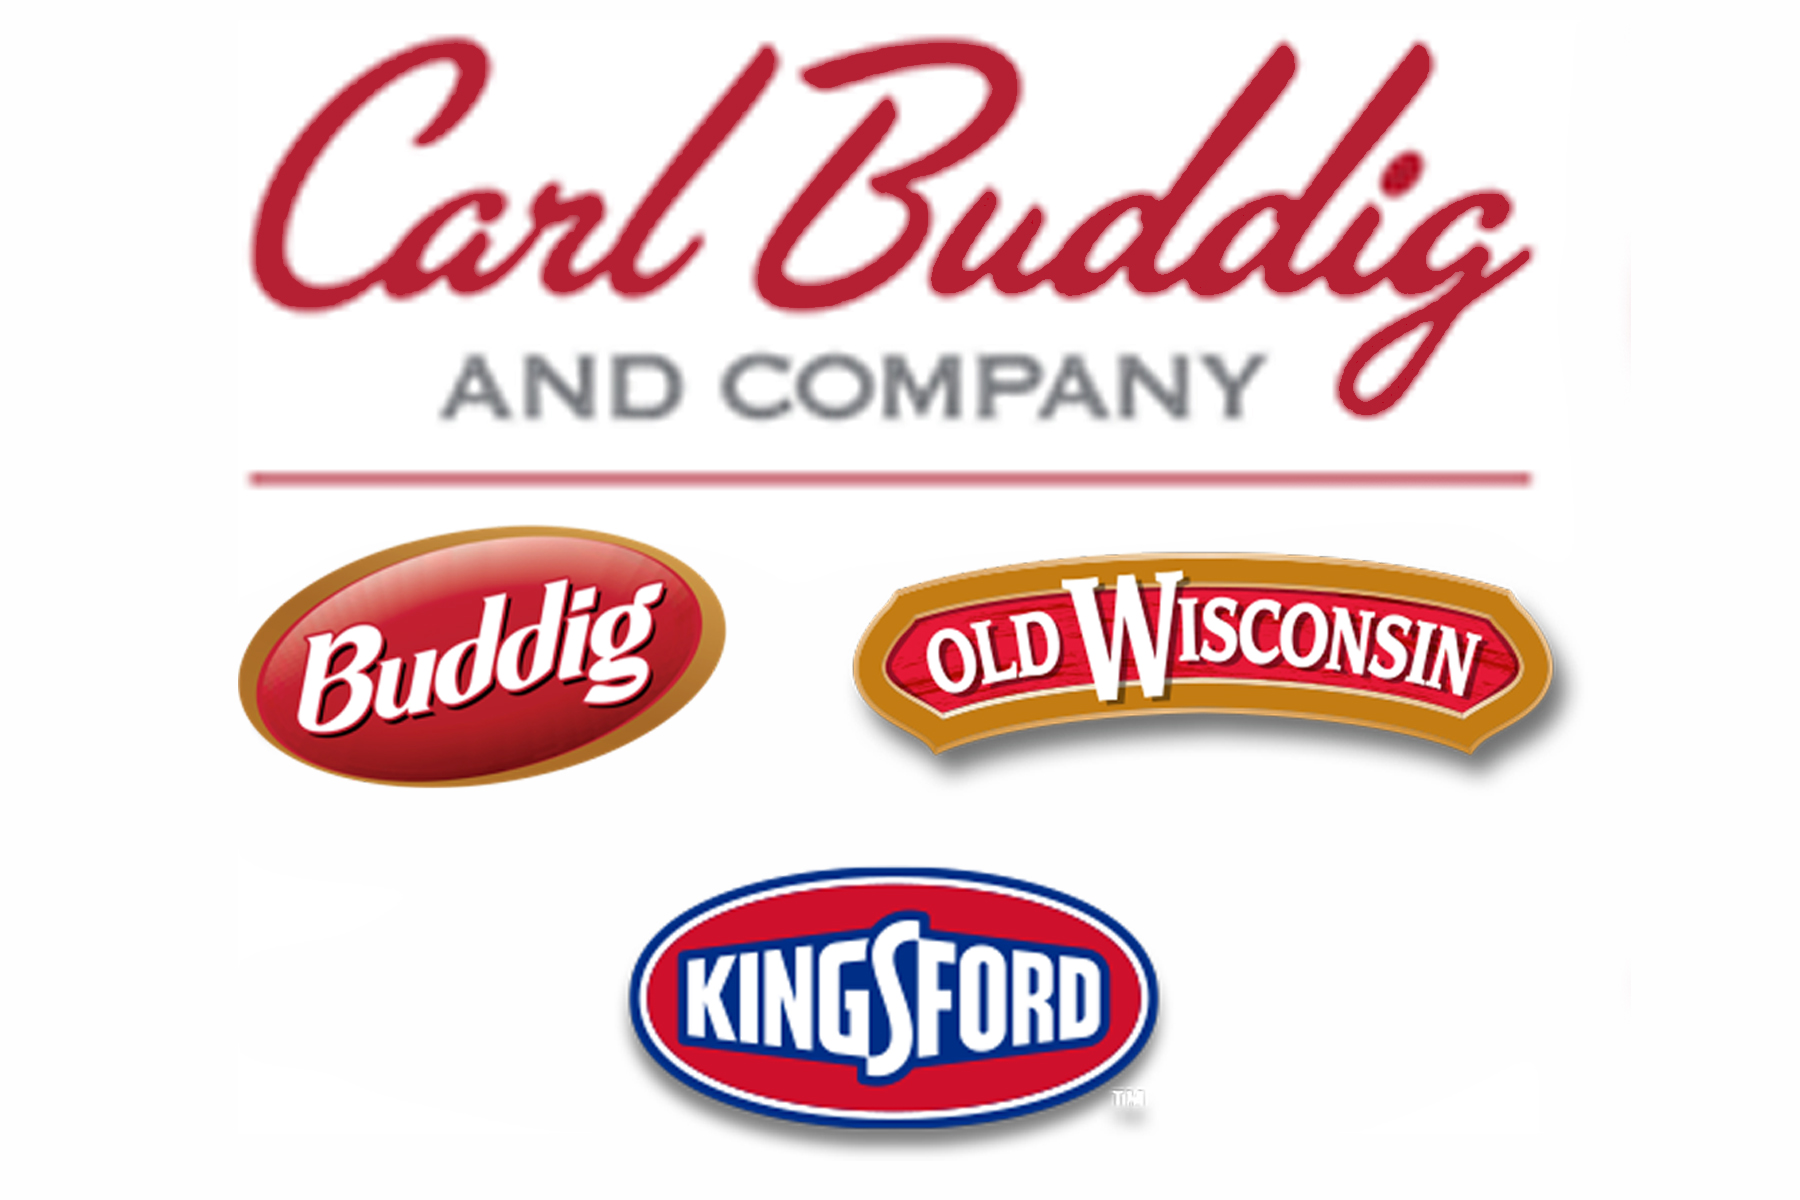 Carl Buddig and Co